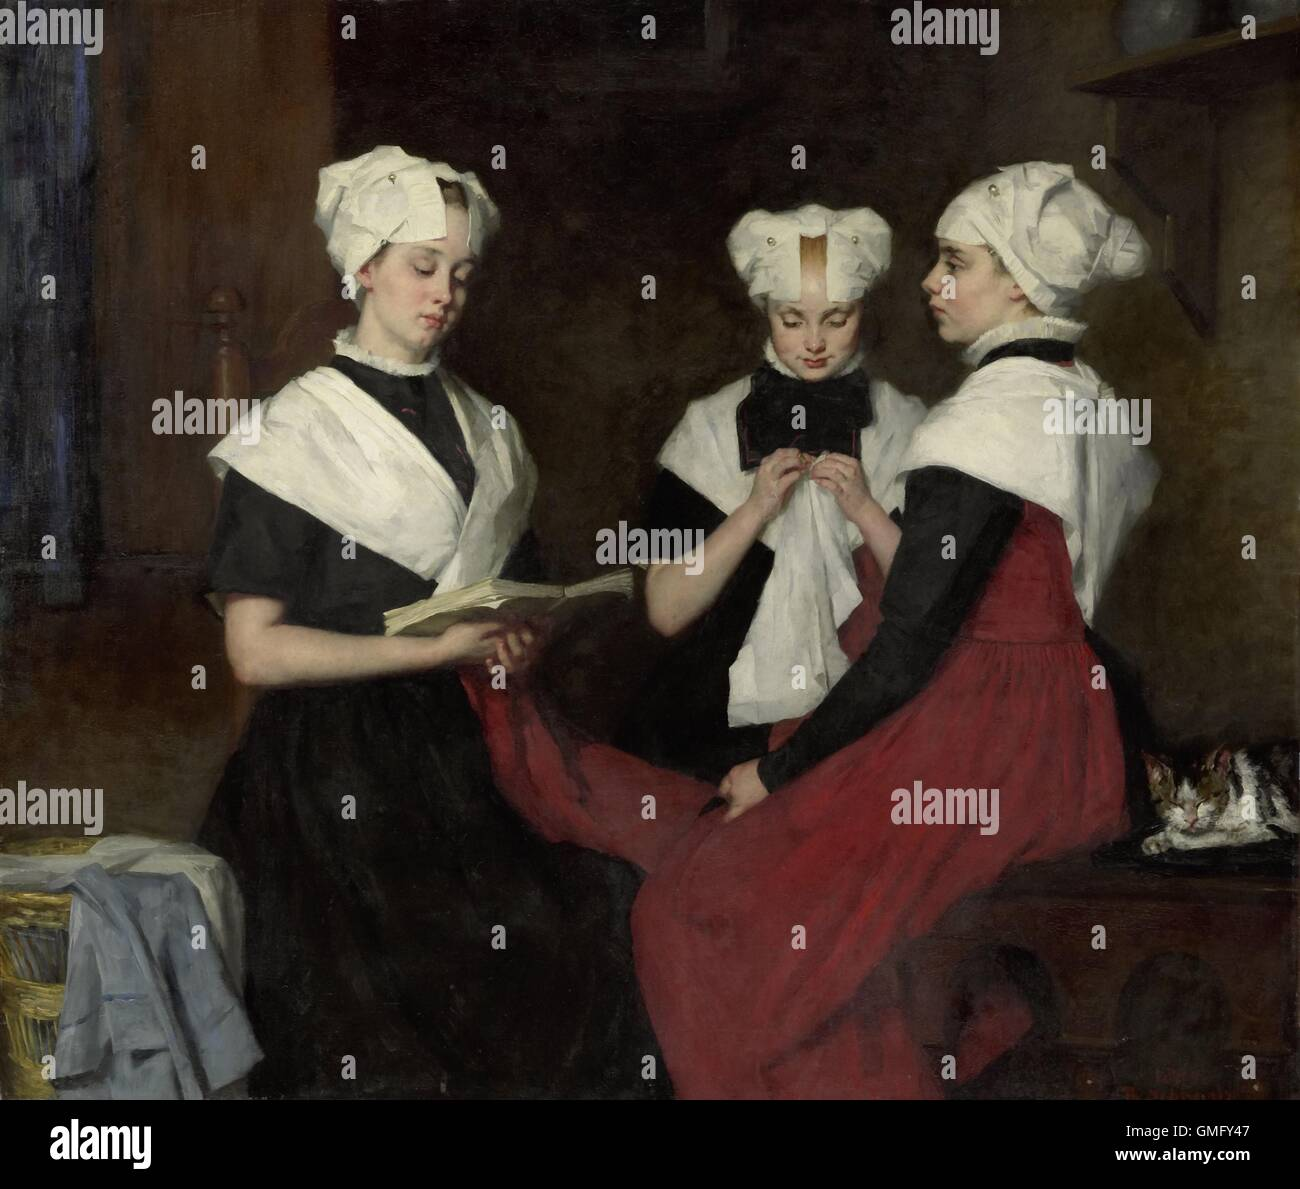 Three Girls from the Amsterdam Orphanage, by Therese Schwartze, 1885, Dutch painting, oil on canvas. One reads from - Stock Image